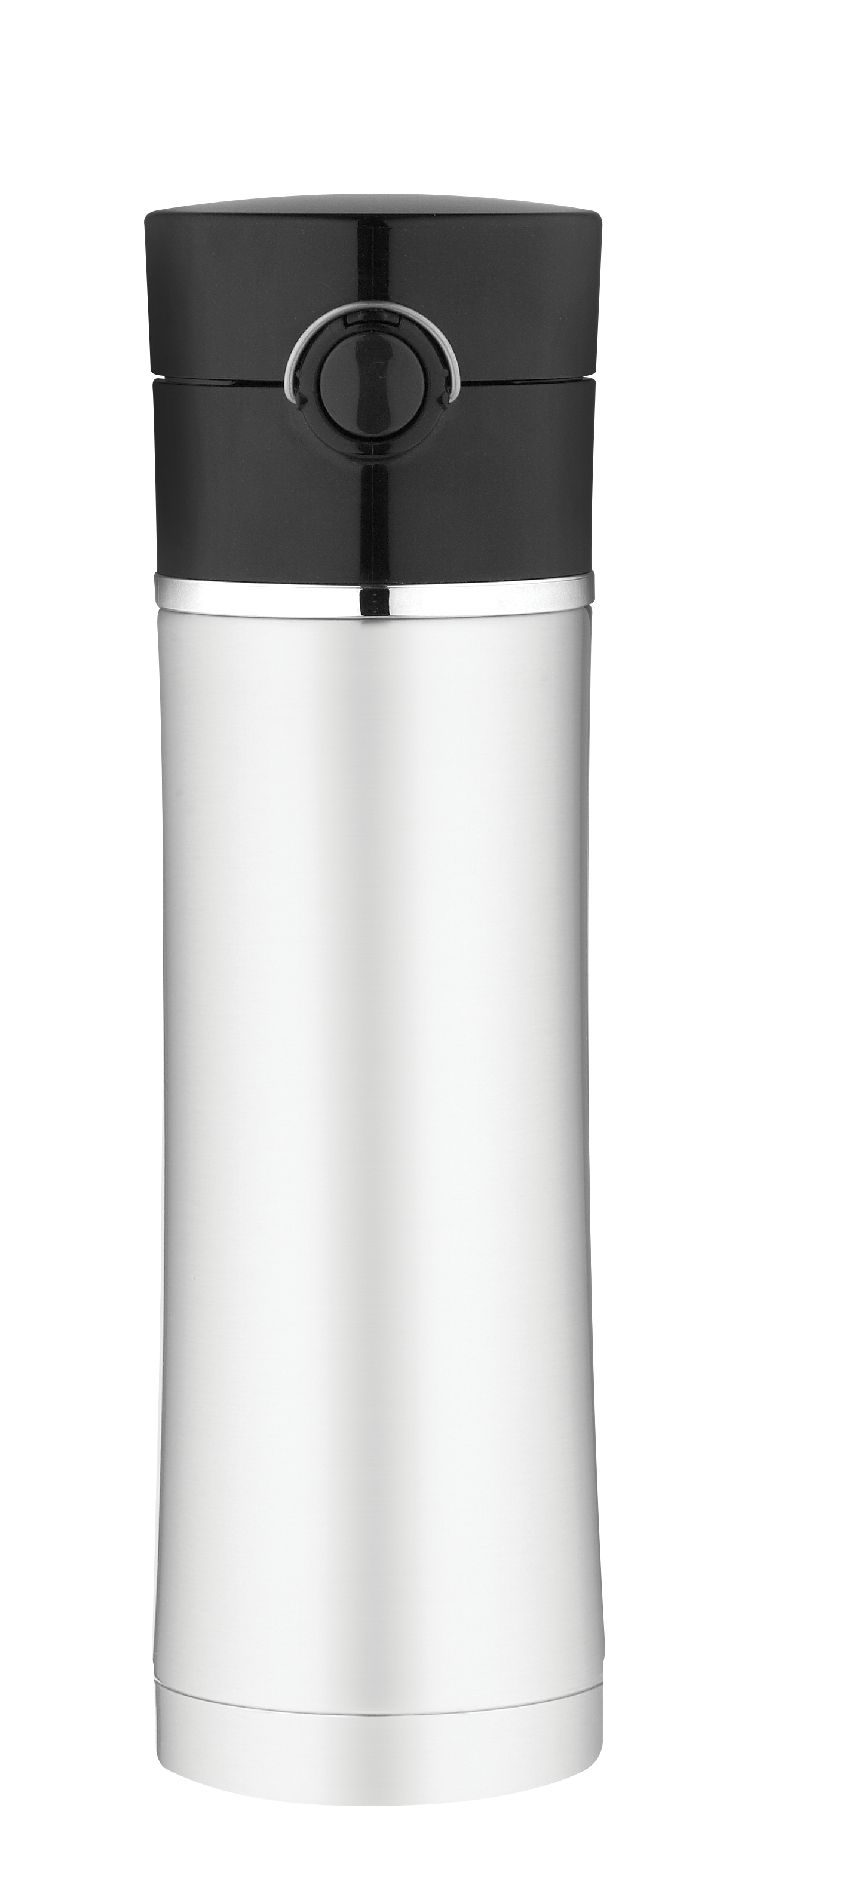 Thermos SIPP 16OZ STAINLESS STEEL DRINK BOTTLE